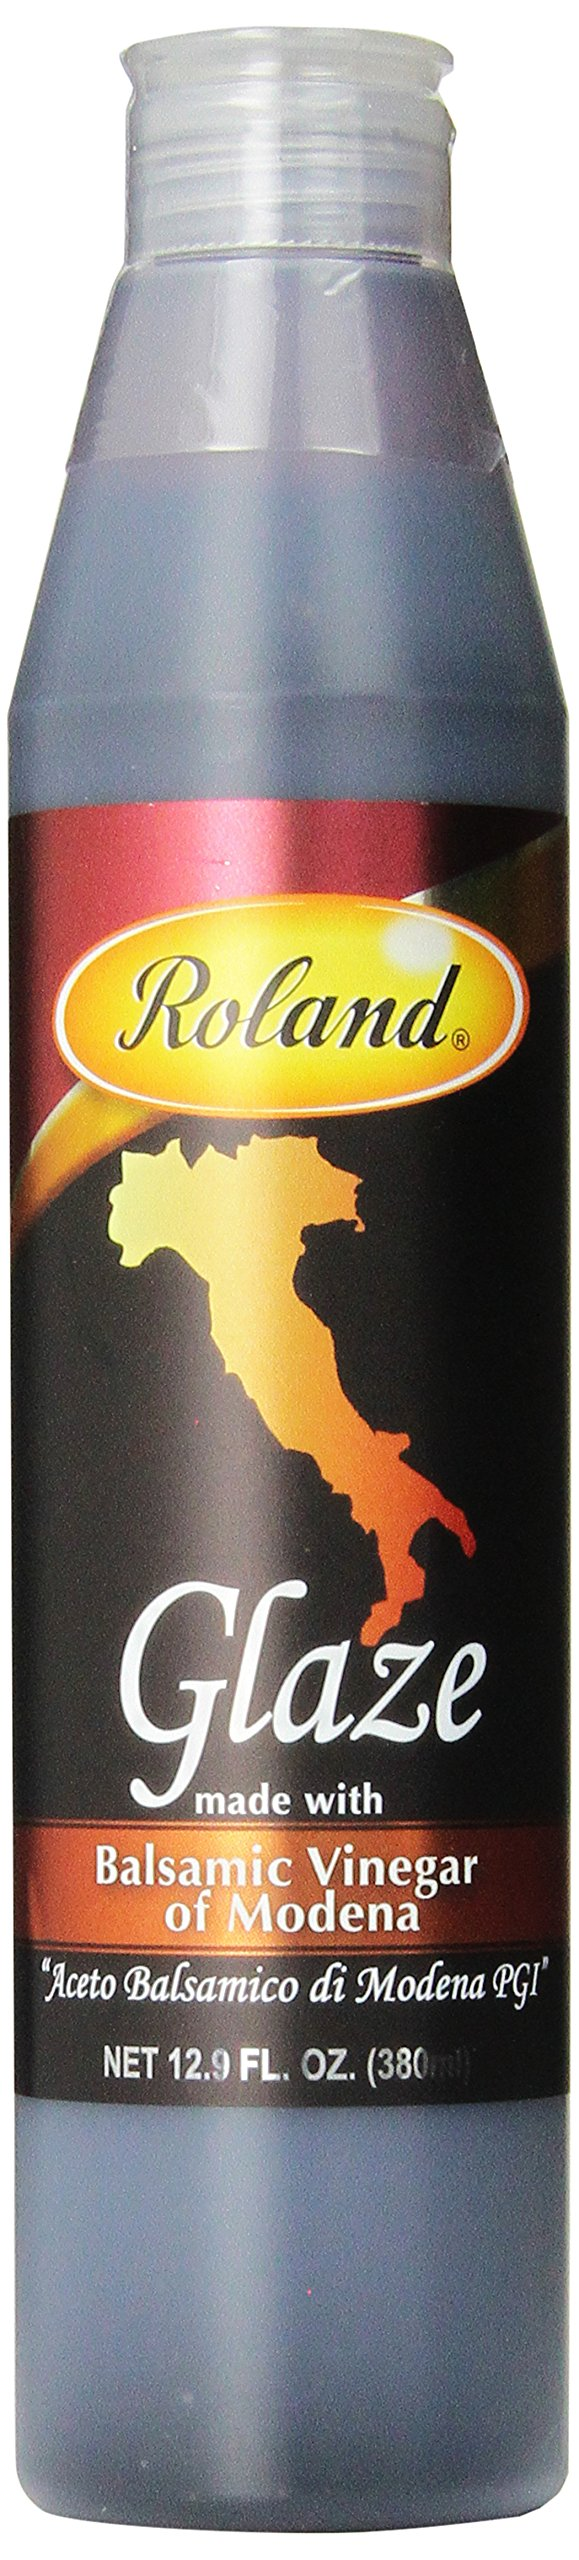 Roland Foods Balsamic Glaze, 12.9 Ounce (Pack of 2) 1 Made from fine quality balsamic vinegar from Modena, it is slowly reduced to a nicely balanced thickened sauce Consistent in flavor, texture, and color, this glaze is a time saver for all chefs Use as a garnish, for entrees, and to create attractive plate designs